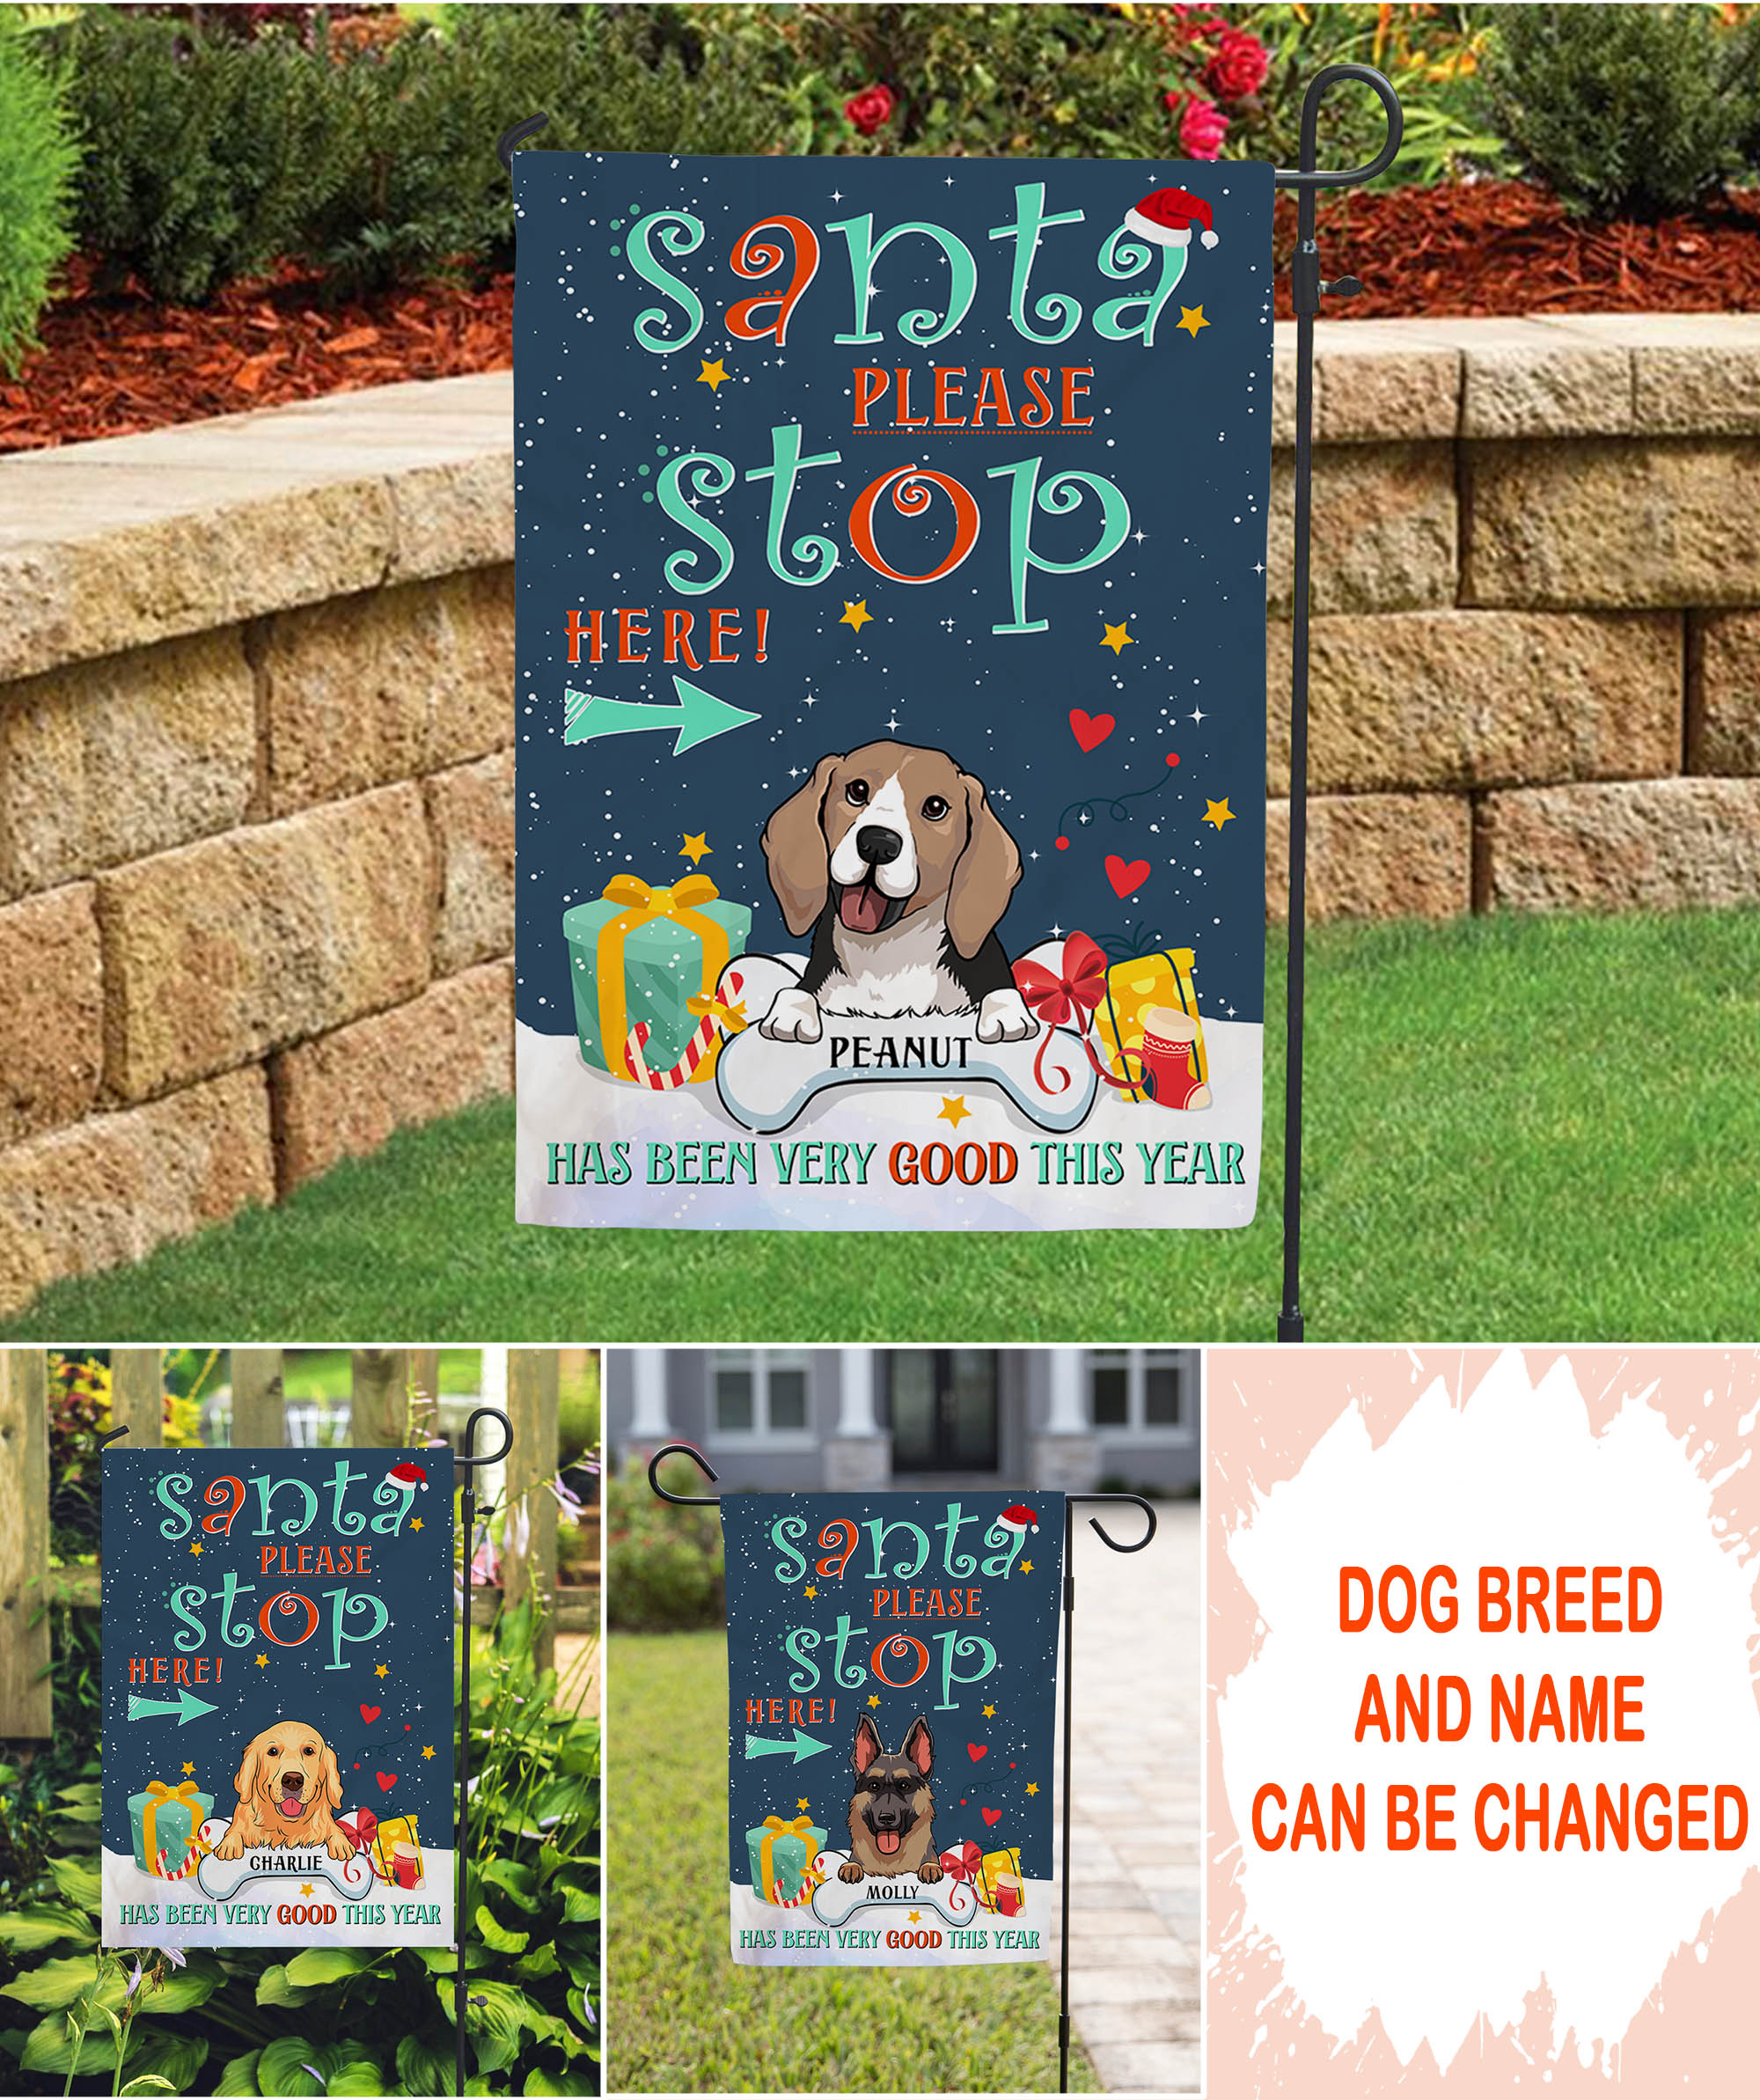 Santa Please Stop Here - Personalized Custom Garden Flag - Christmas